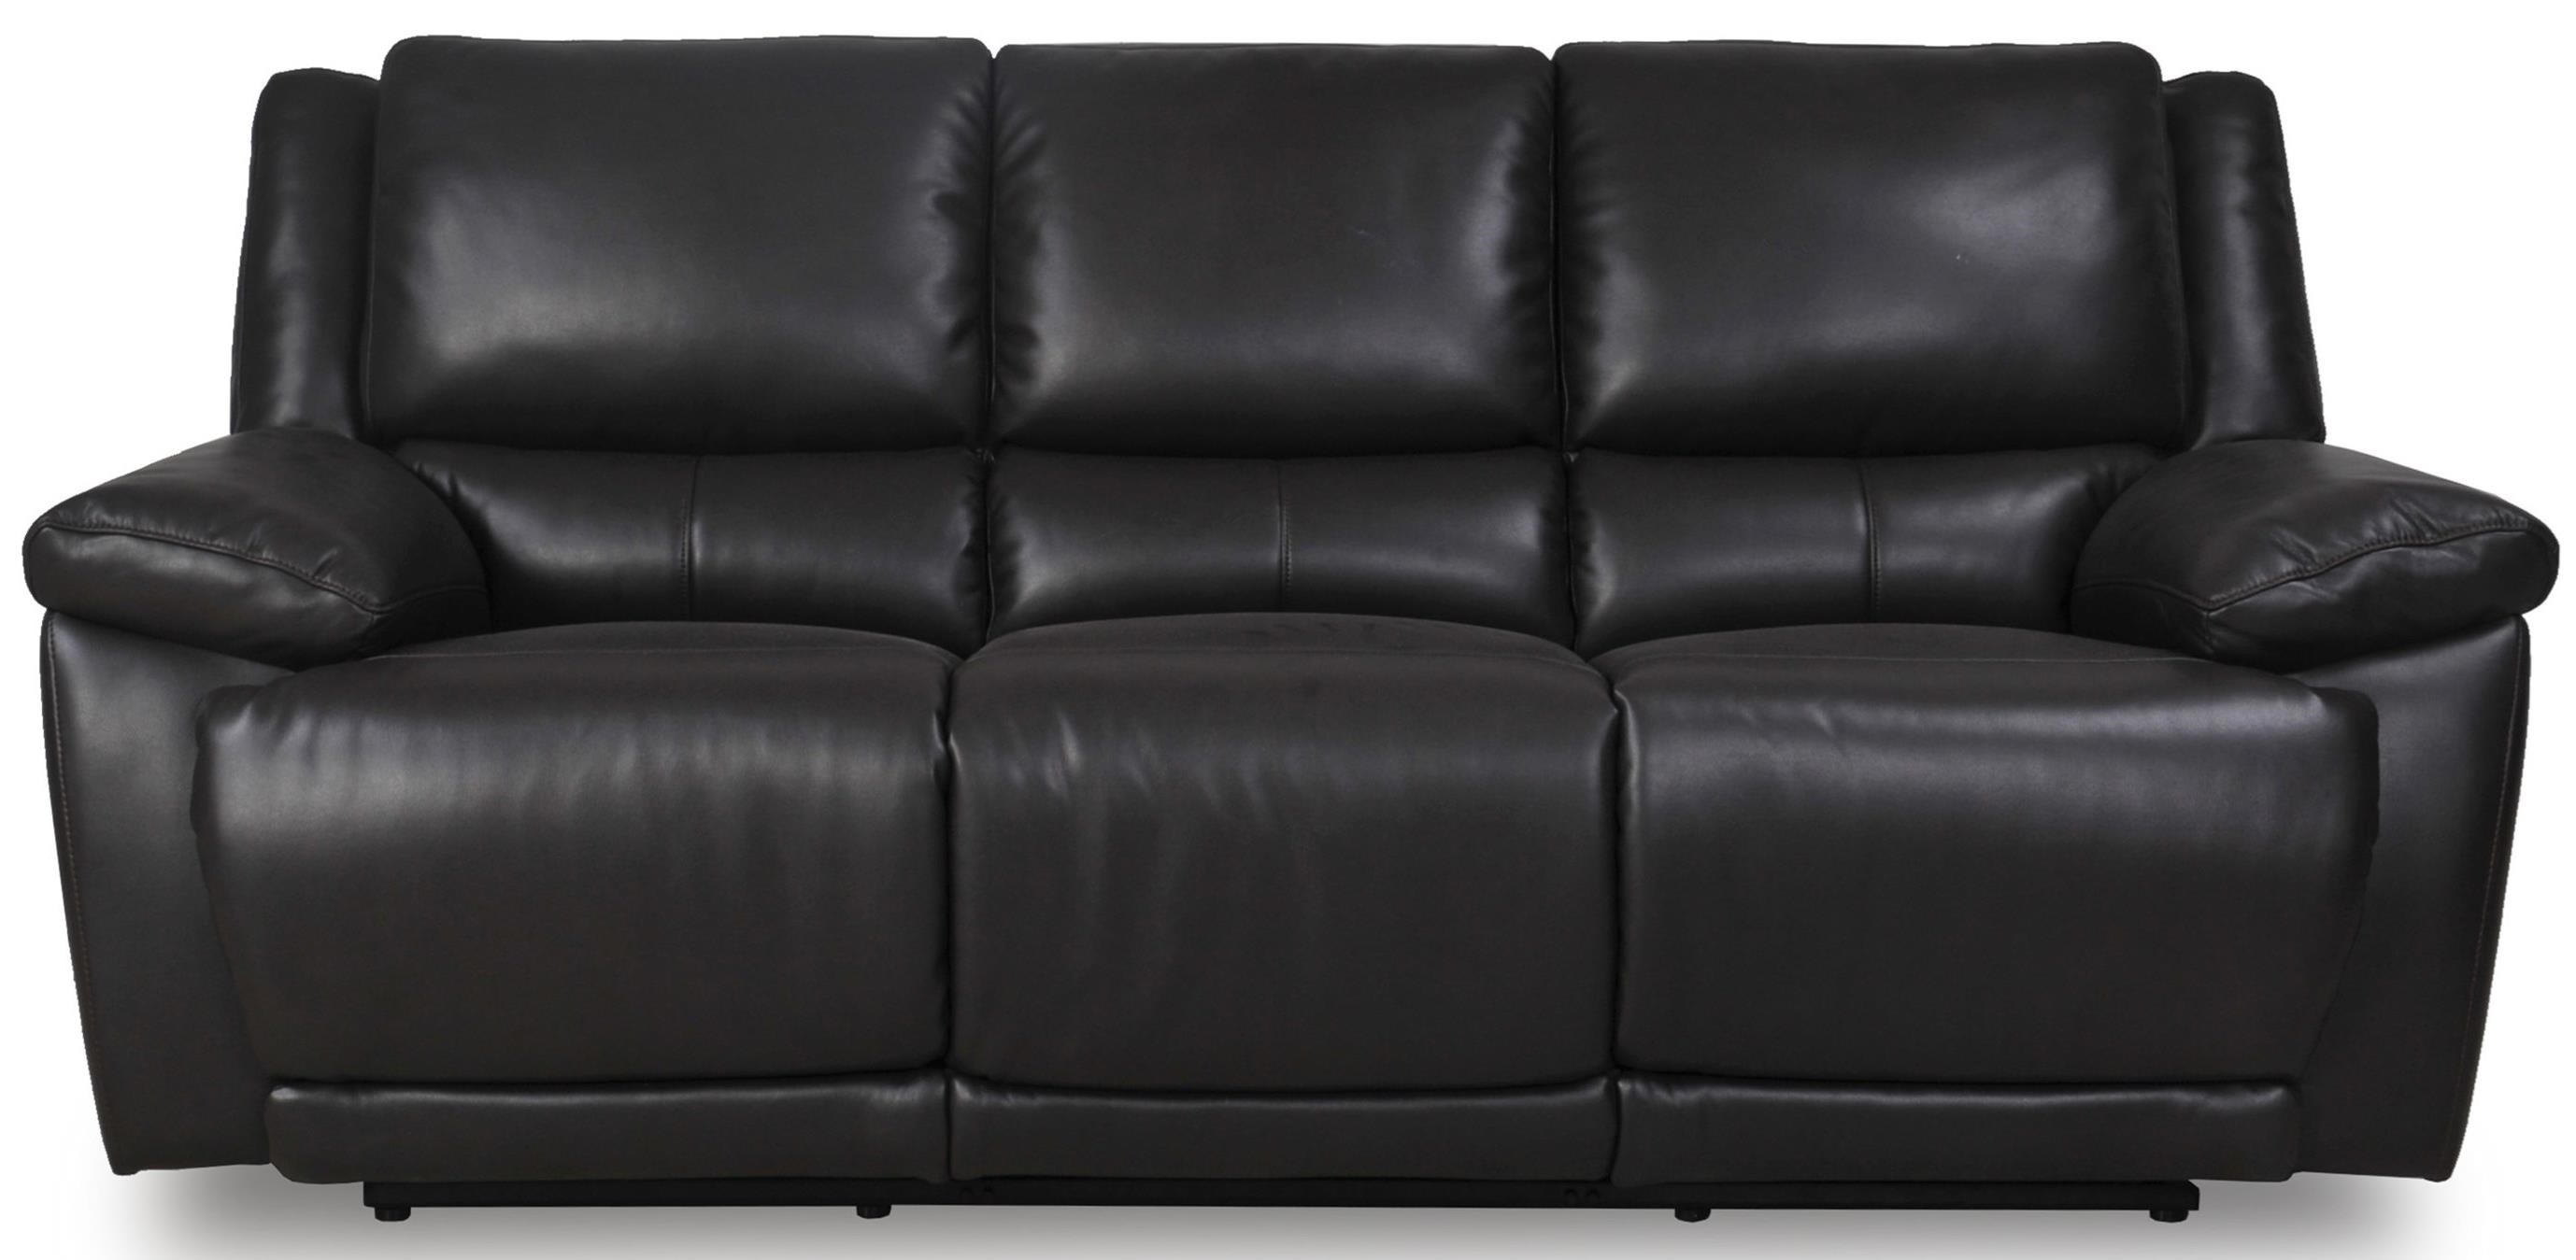 Futura Leather Curtis Power Reclining Sofa HomeWorld Furniture